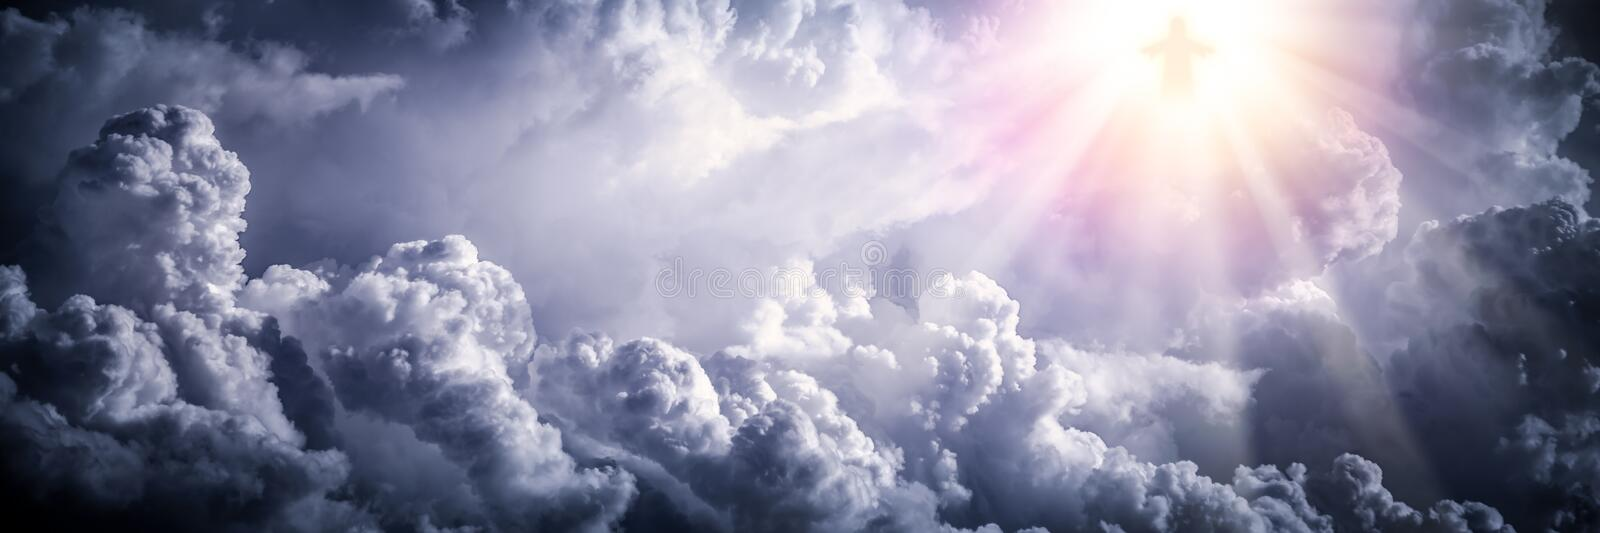 Jesus Christ In The Clouds royalty free stock photography